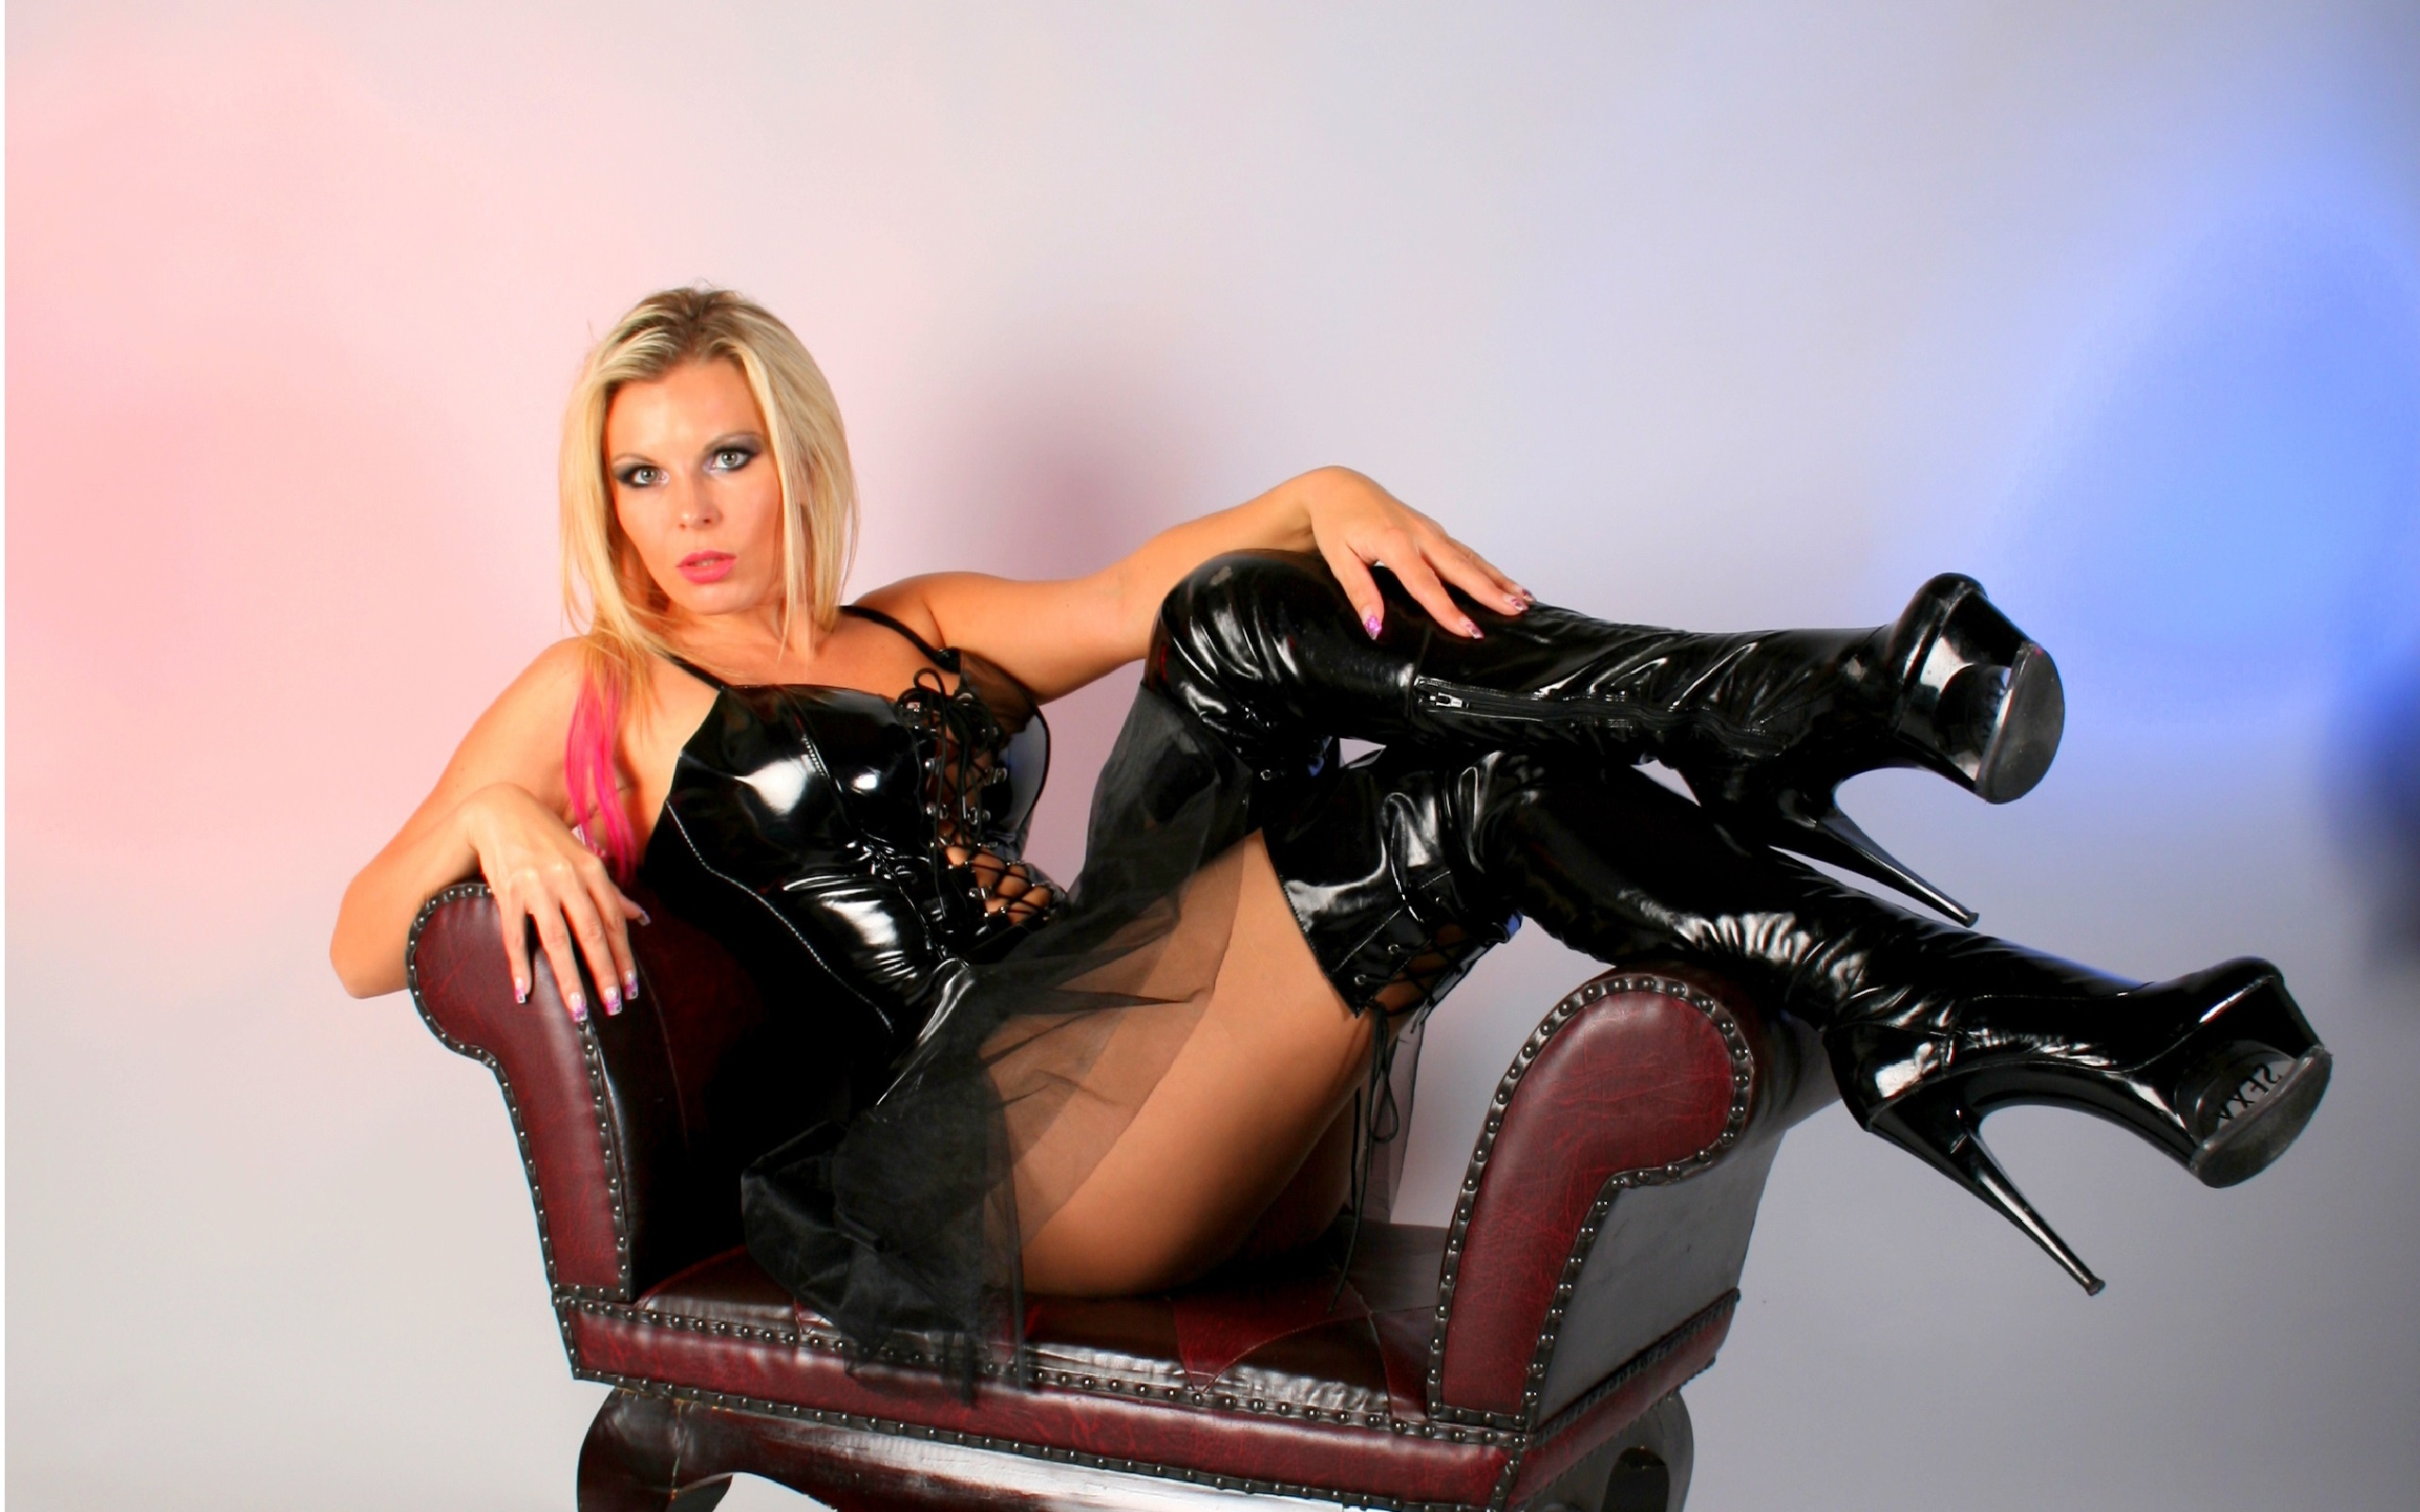 Wallpaper Aische, Blonde, German, Amateur, Model, Cam Girl -9067